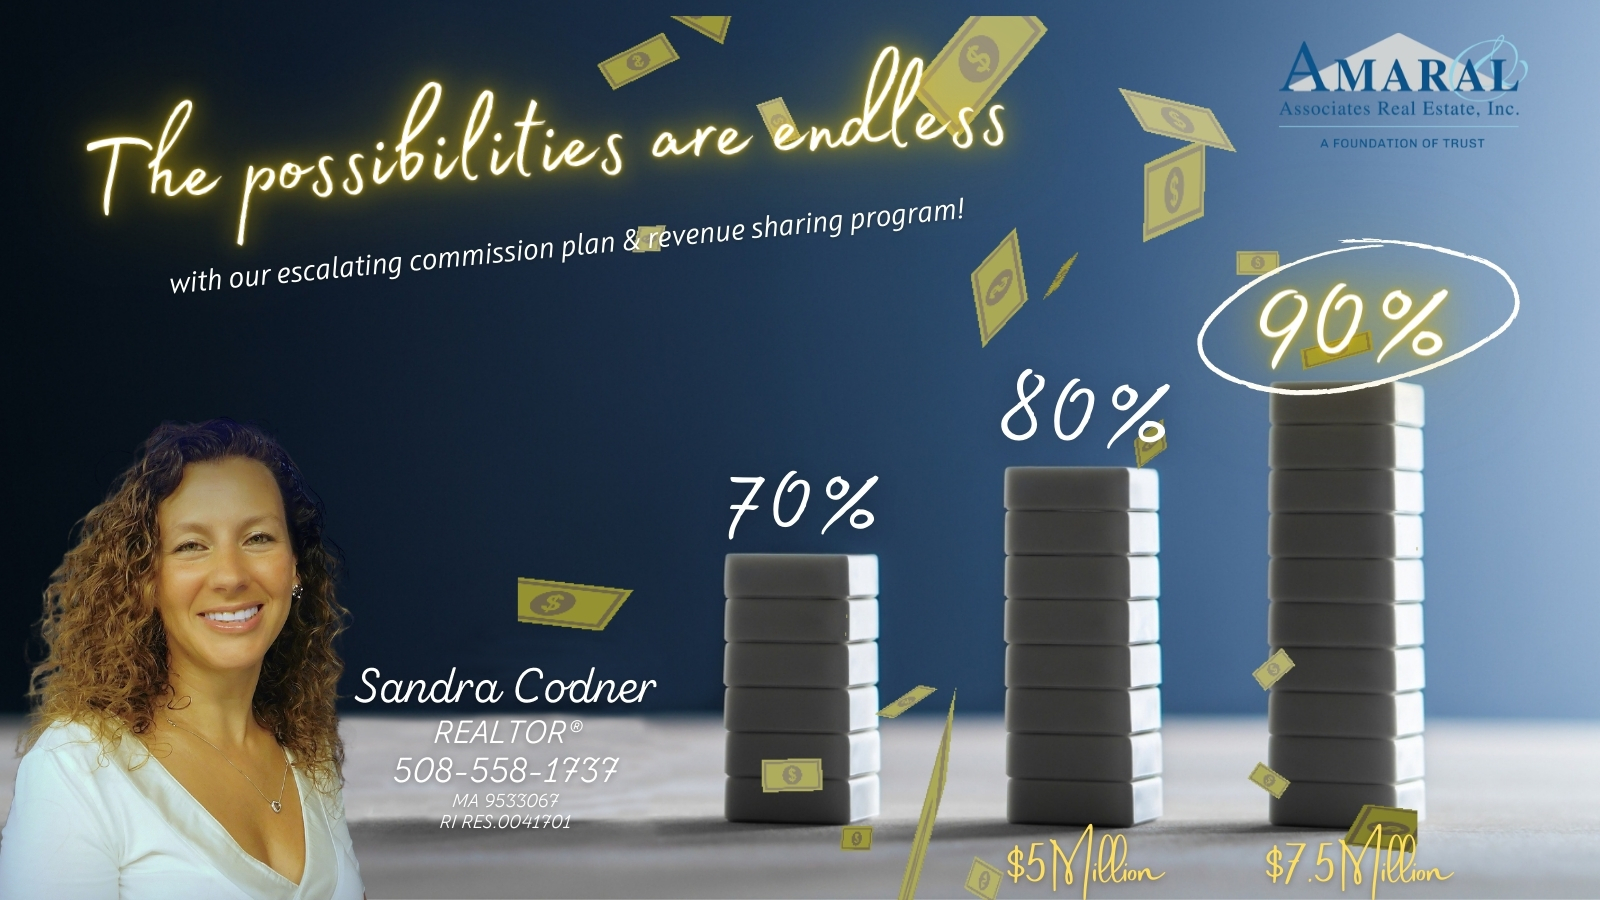 Congratulations Sandra Codner for reaching the next commission level!